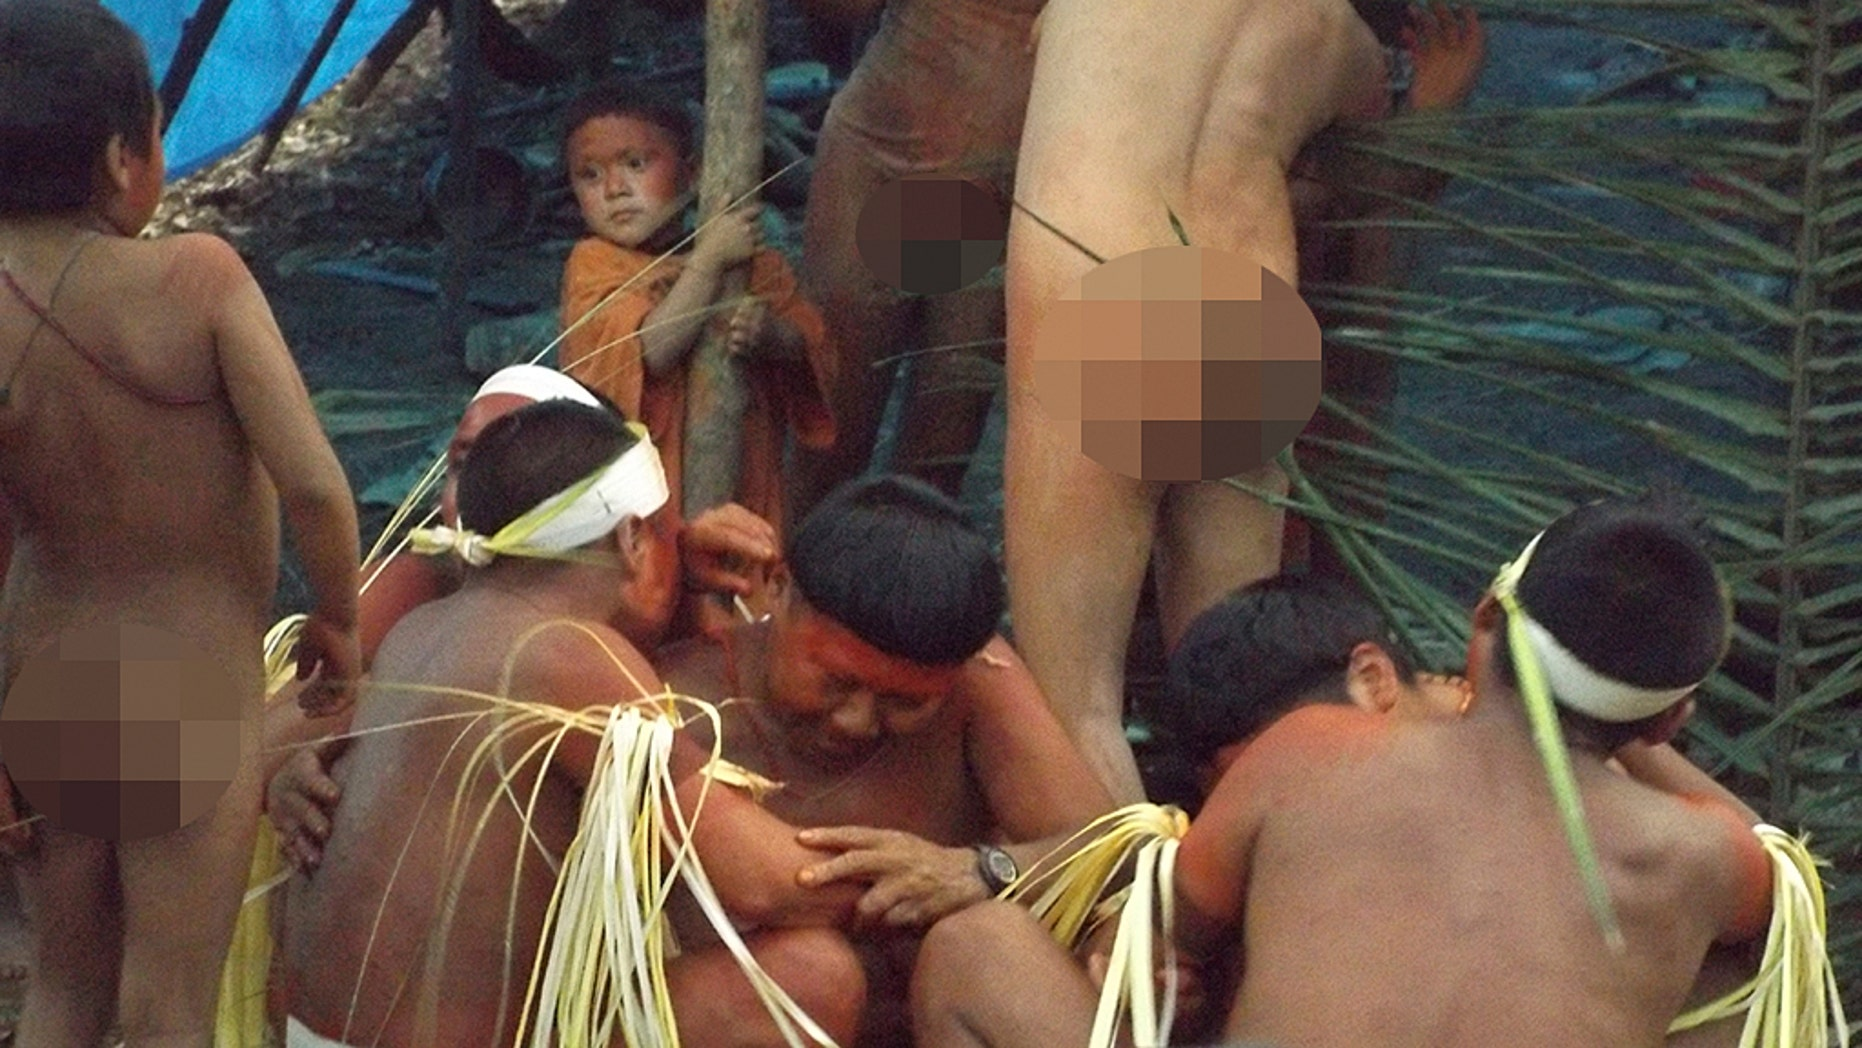 This undated 2014 handout photo released by Brazil's National Indian Foundation, FUNAI, shows members of the Korubo tribe in the Javari Valley, in the northern state of Amazonas, Brazil.